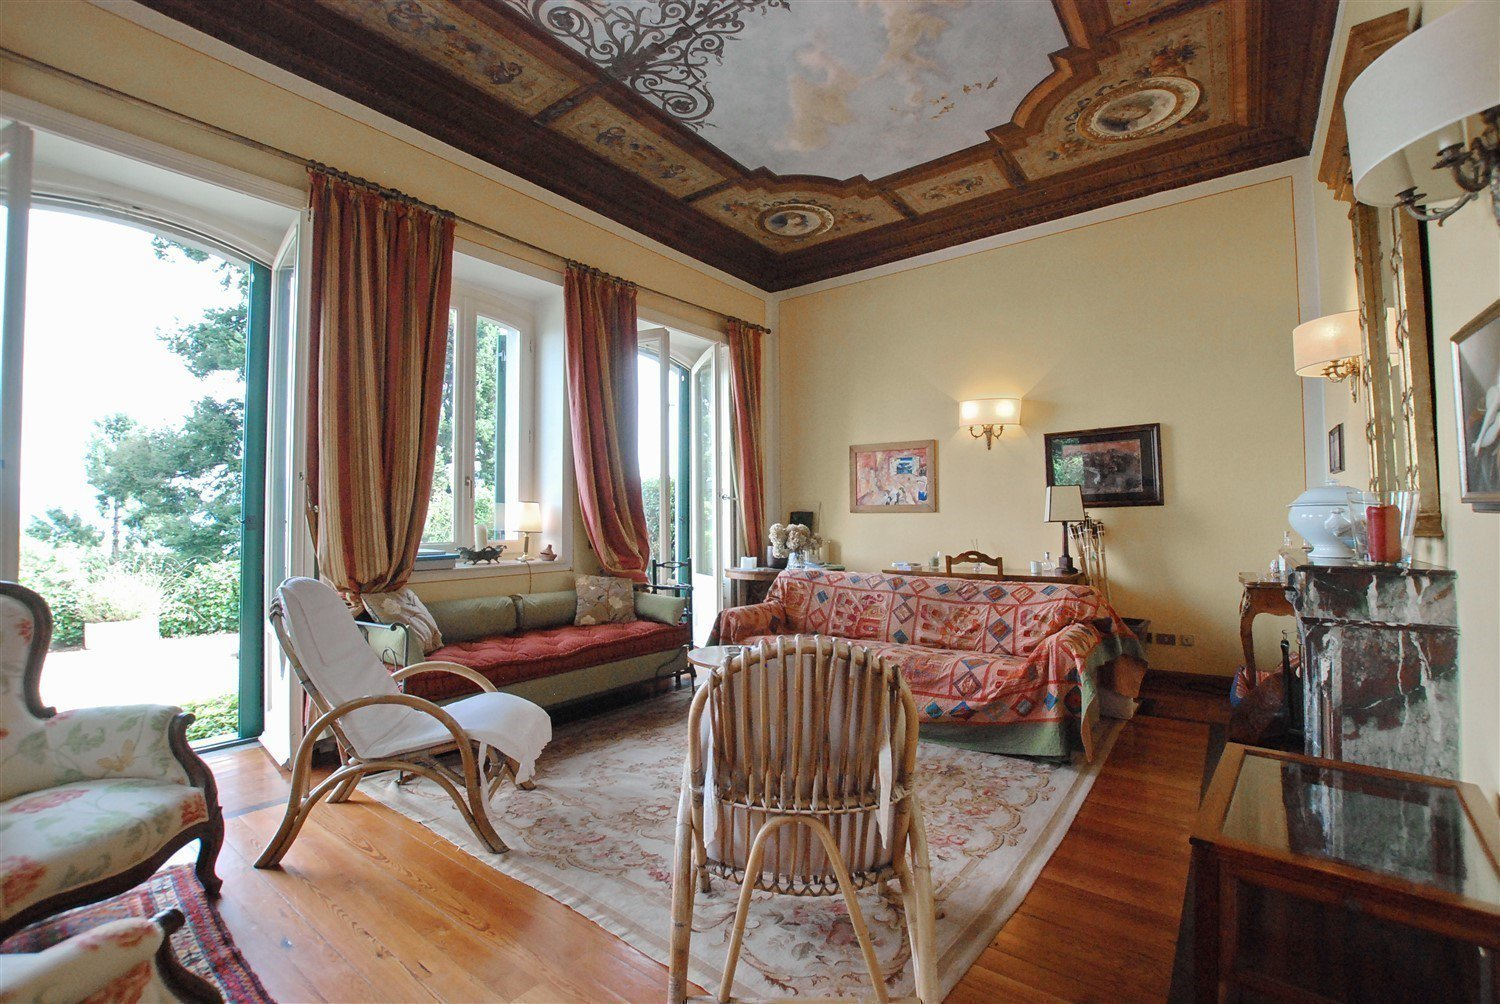 Luxurious apartment for sale in Stresa - living room